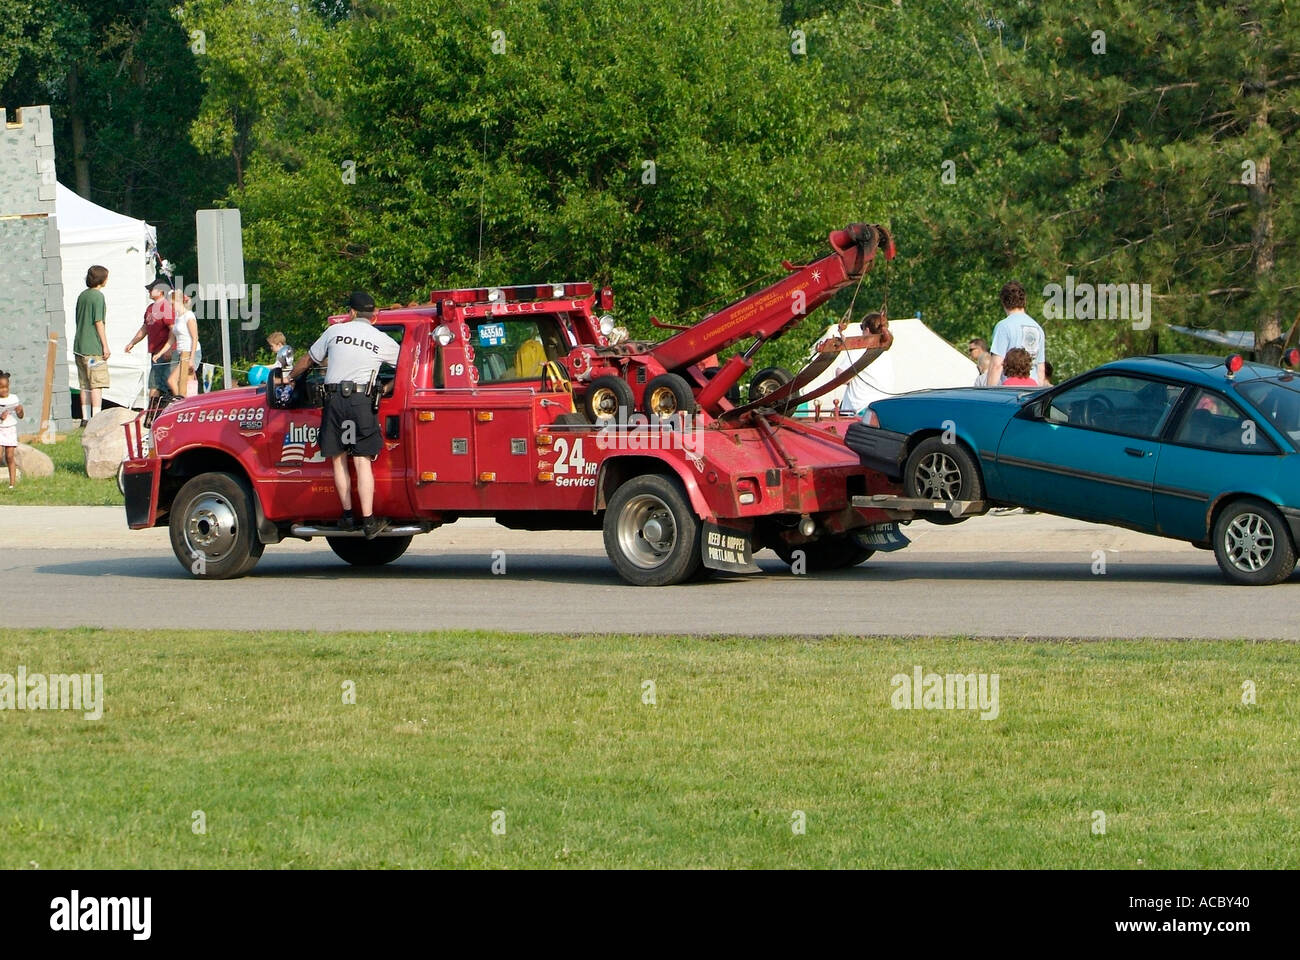 Tow Truck Pull Stock Photos Images 1954 Dodge Police Removes Illegally Parked Automobile Image